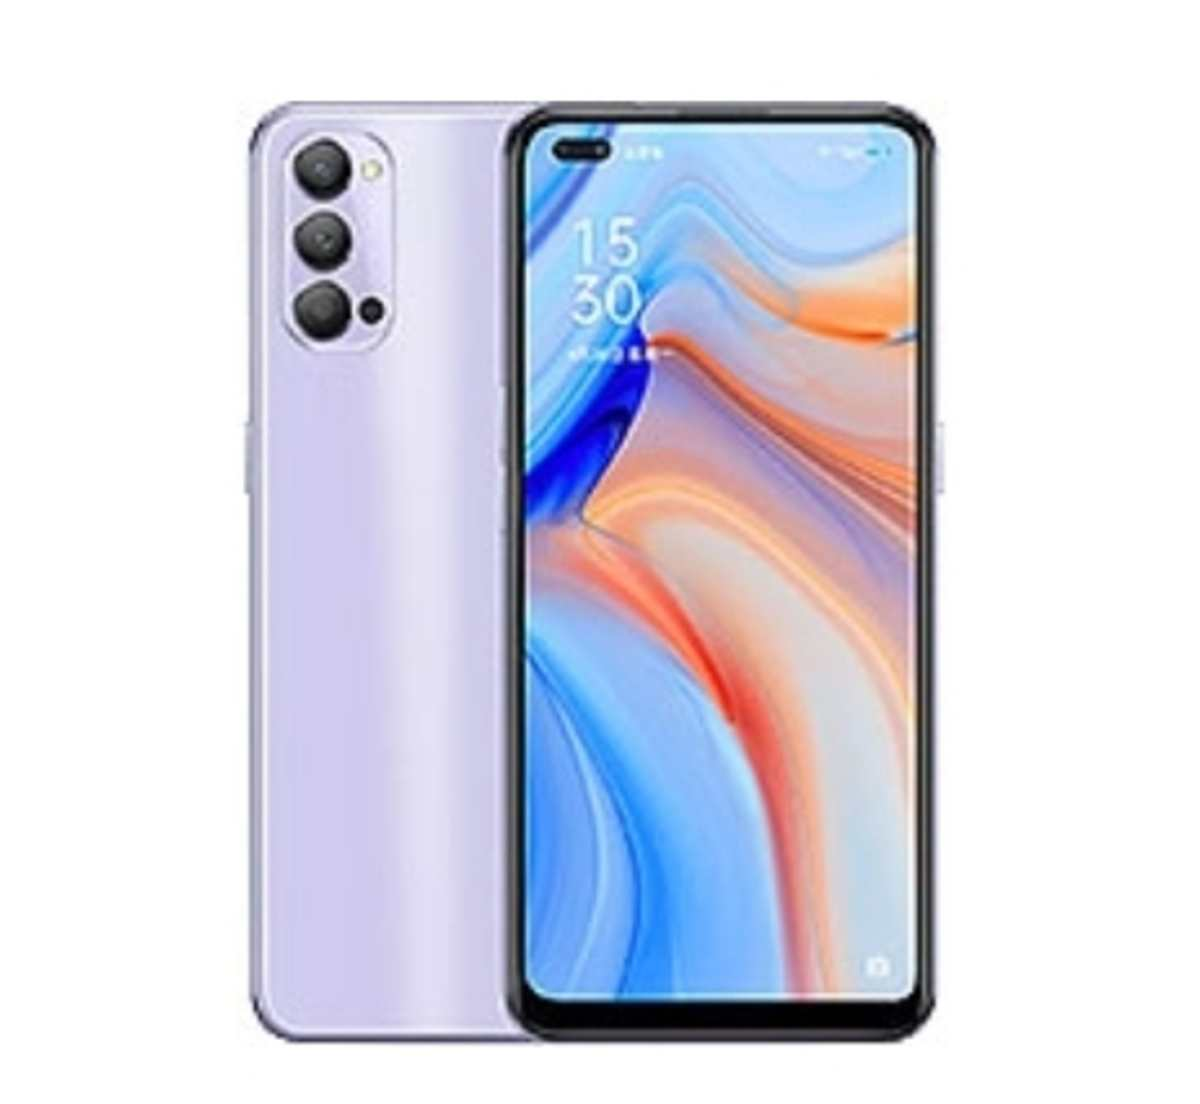 opoo reno4 5g price in Nigeria, how much is oppo reno4 5g in Nigeria, price of oppo reno4 5g in Nigeria, Reno4 5G, oppo reno4 5g specs and price in Nigeria, oppo reno4 5g specs, oppo reno4 5g price, Oppo reno4 5g and price in Nigeria, Oppo reno4 5g specification, oppo reno4 5g price and specs in Nigeria, oppo reno4 5g in Nigeria